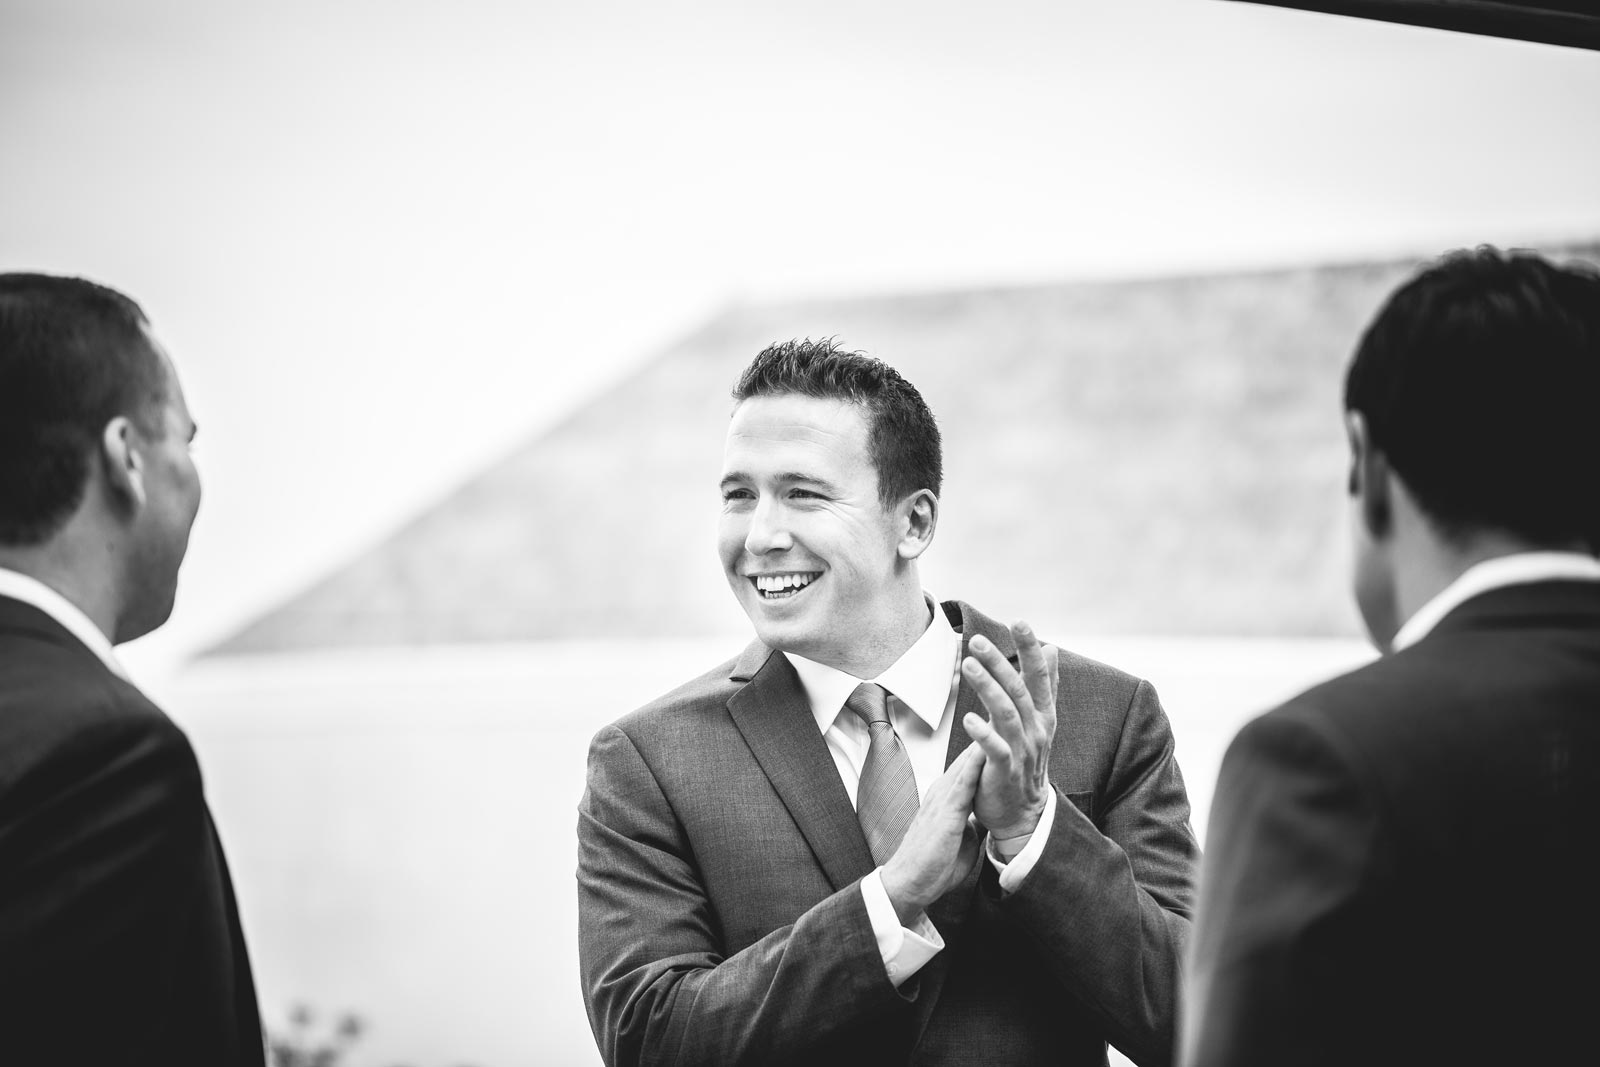 007-wedding-groom-clapping-hands